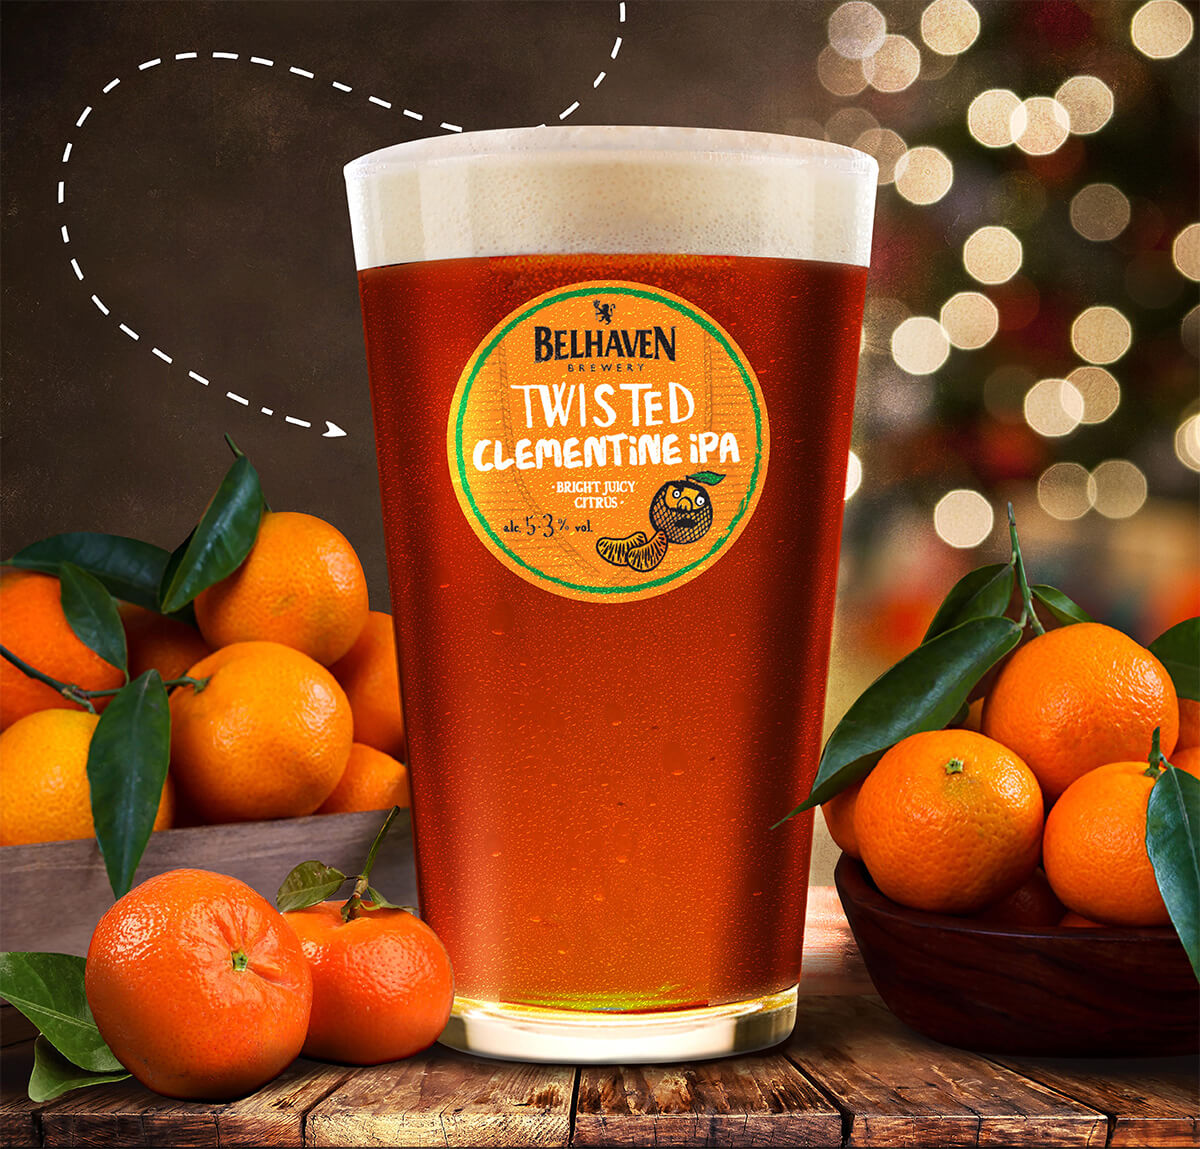 Belhaven Brewery — Twisted Clementine IPA